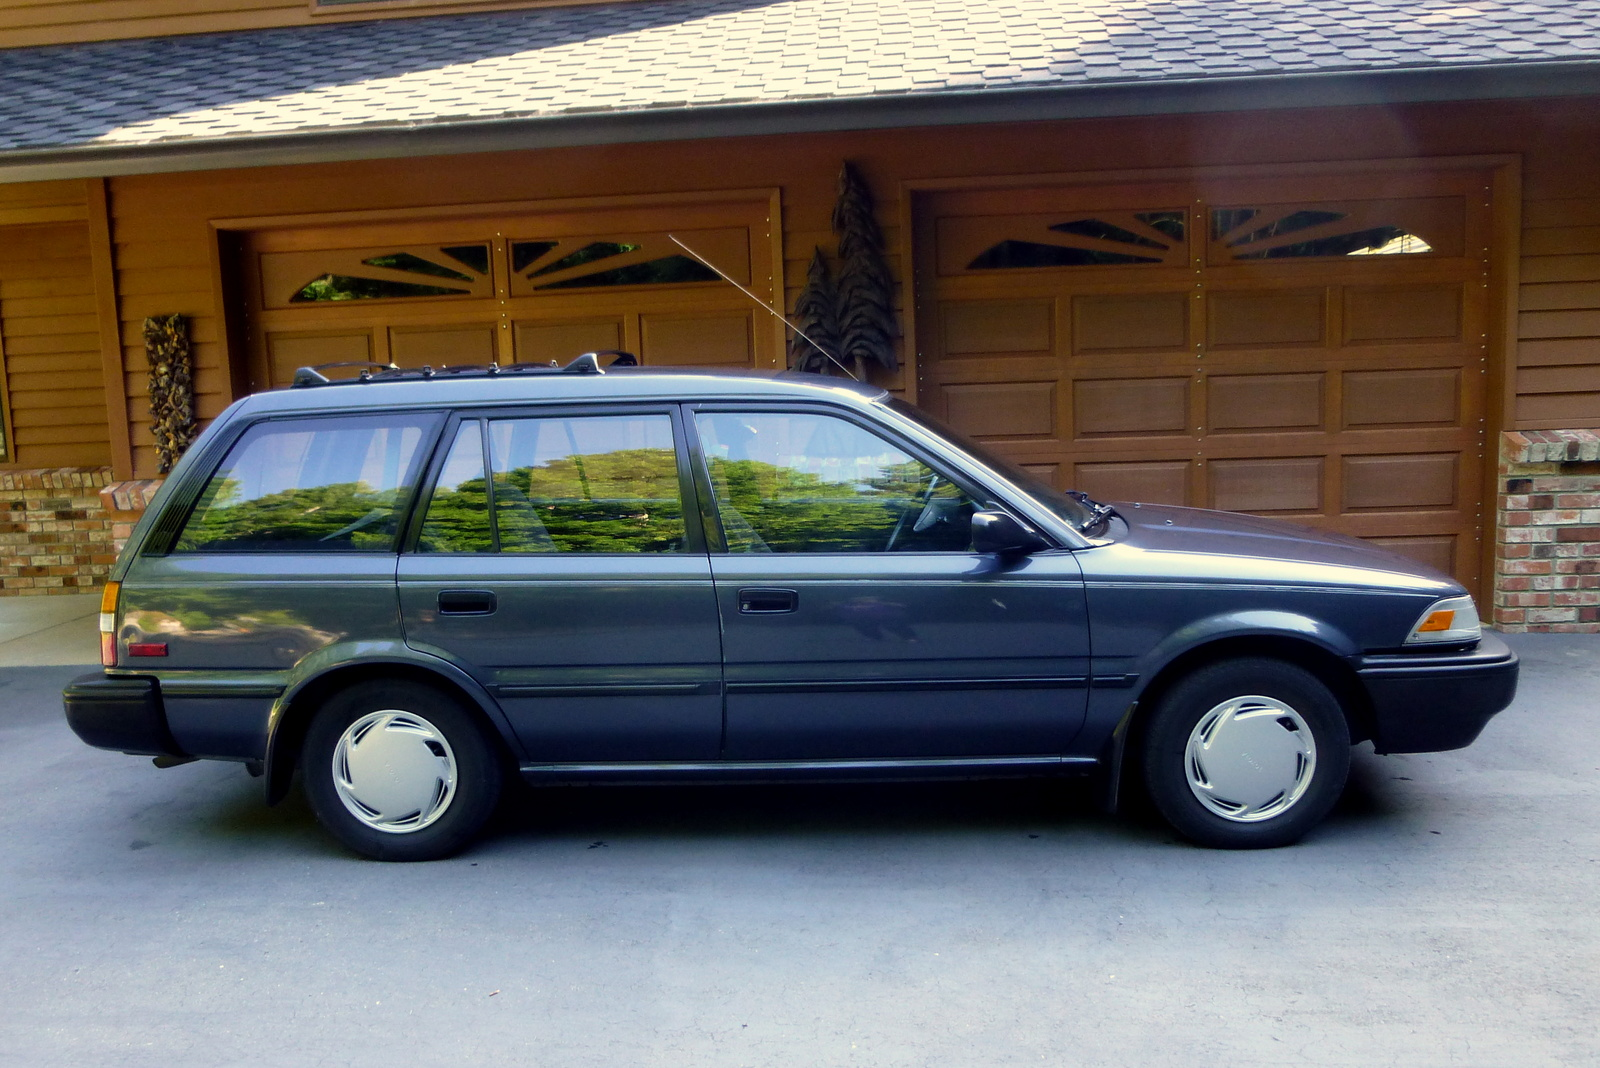 Picture of 1991 toyota corolla dx wagon exterior